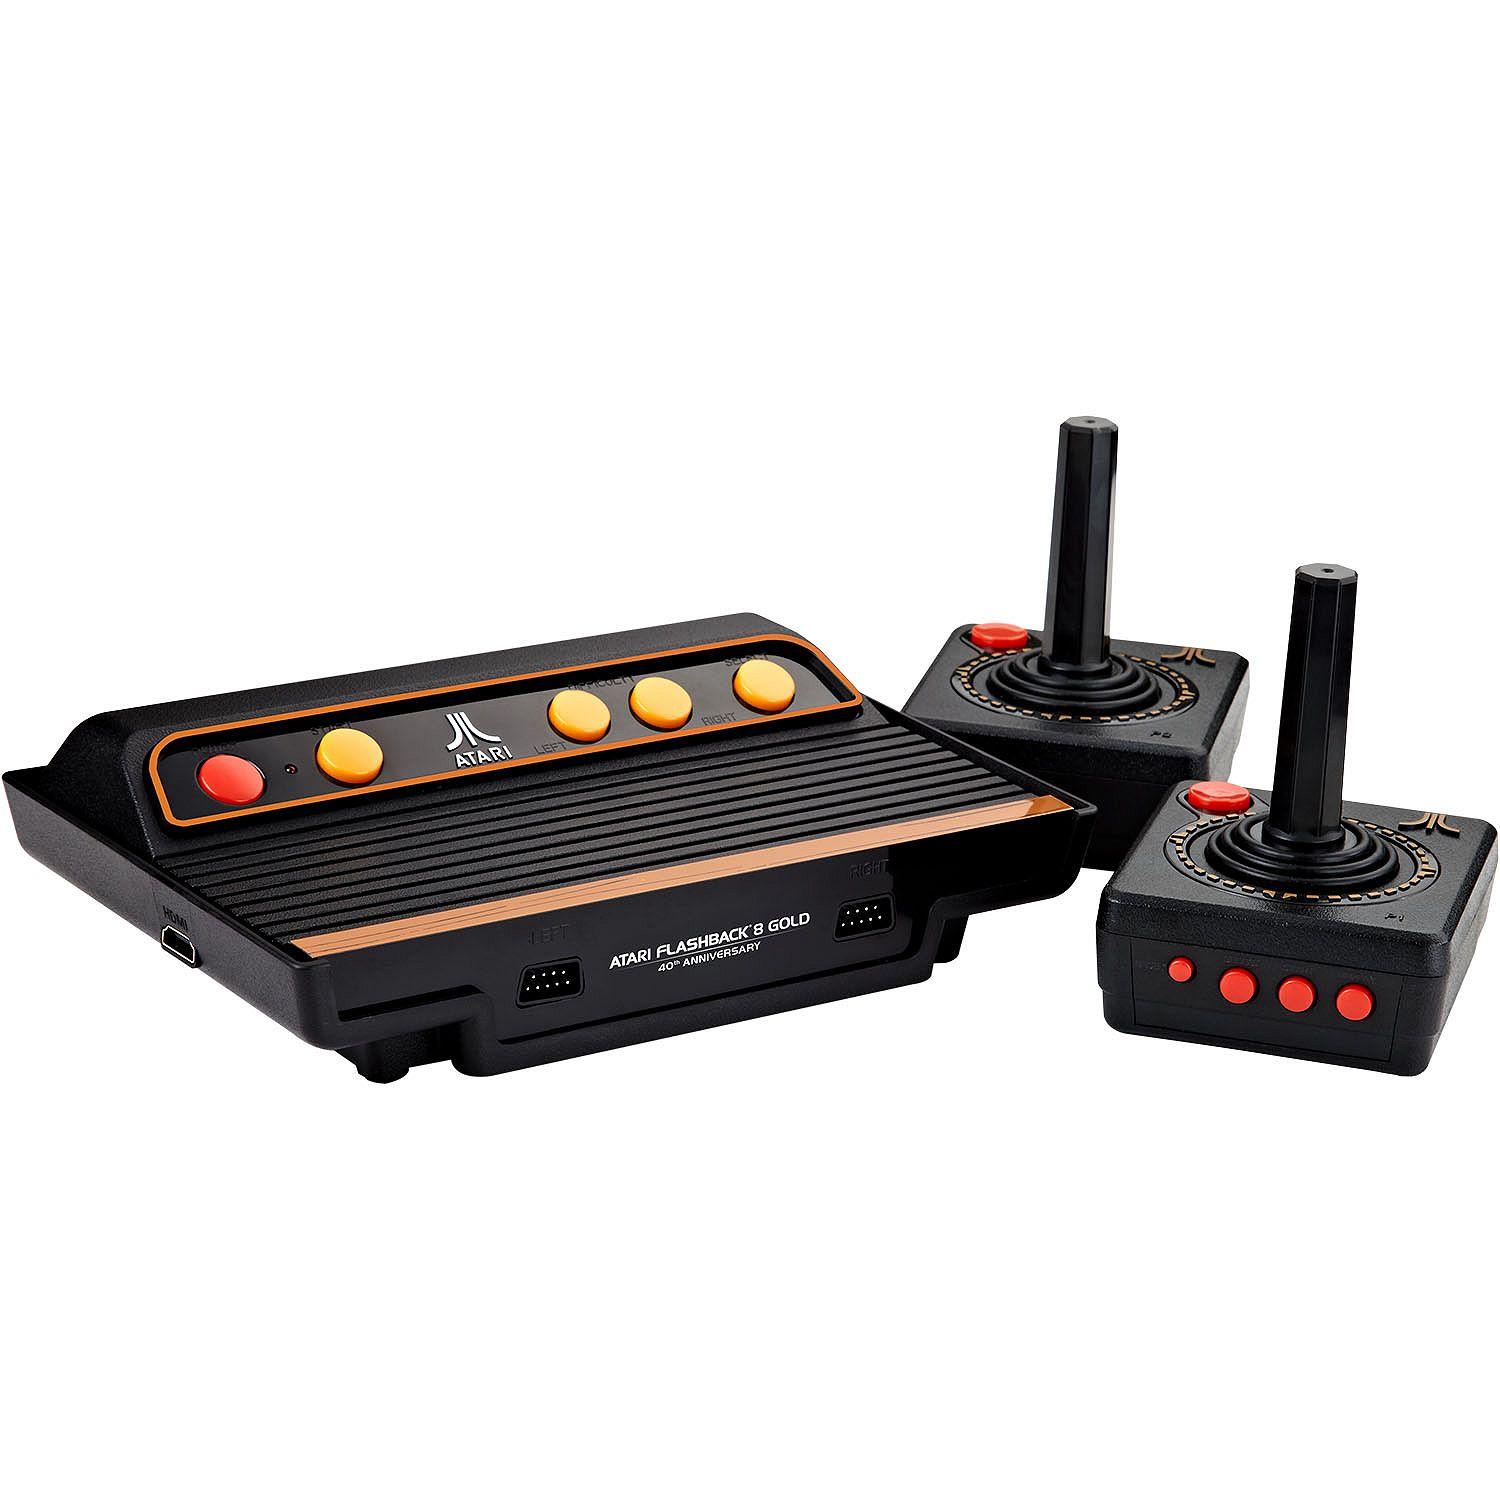 Atari flashback 8 gold hd classic game console 120 built - Atari flashback 3 classic game console ...